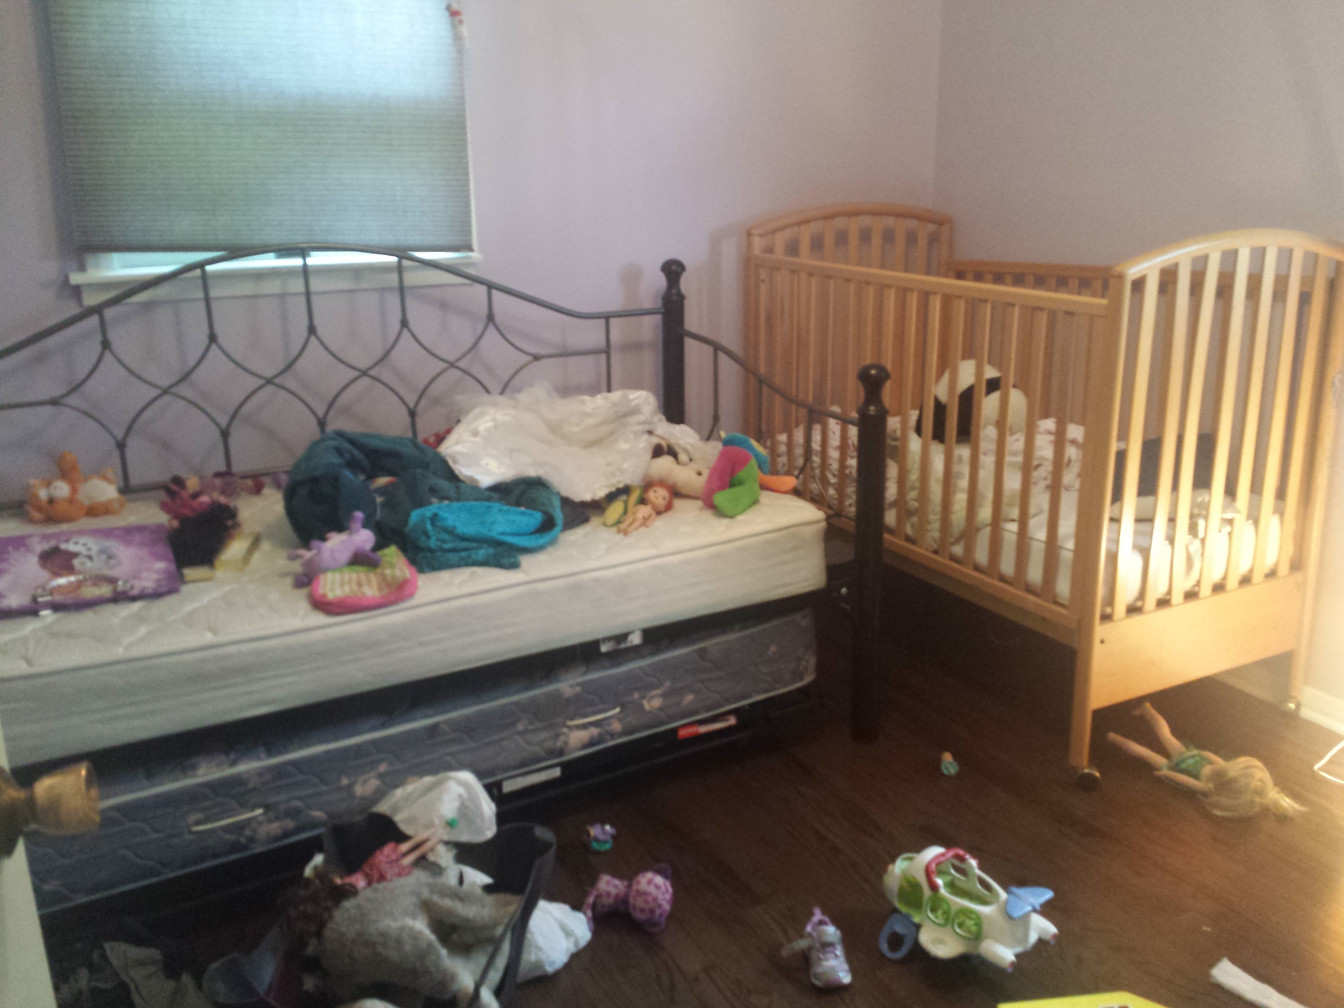 CHILDRENS ROOM: BEFORE